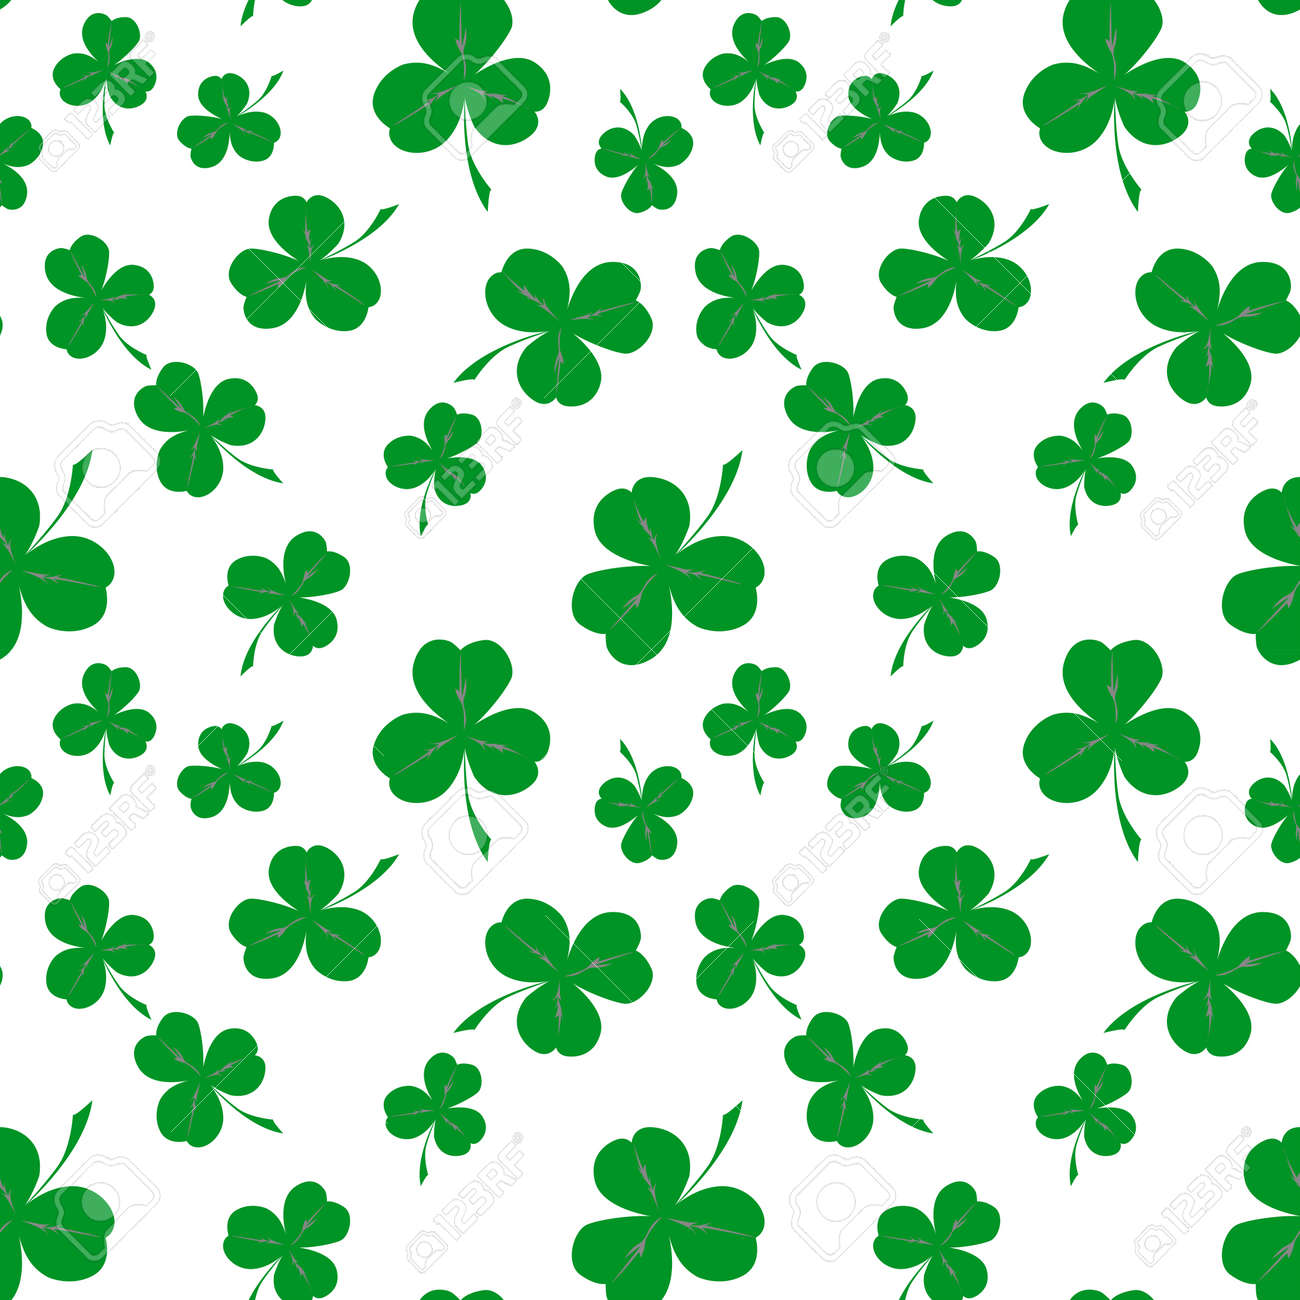 Seamless clover pattern, vector background for St. Patrick's Day. Vector illustration - 70187374